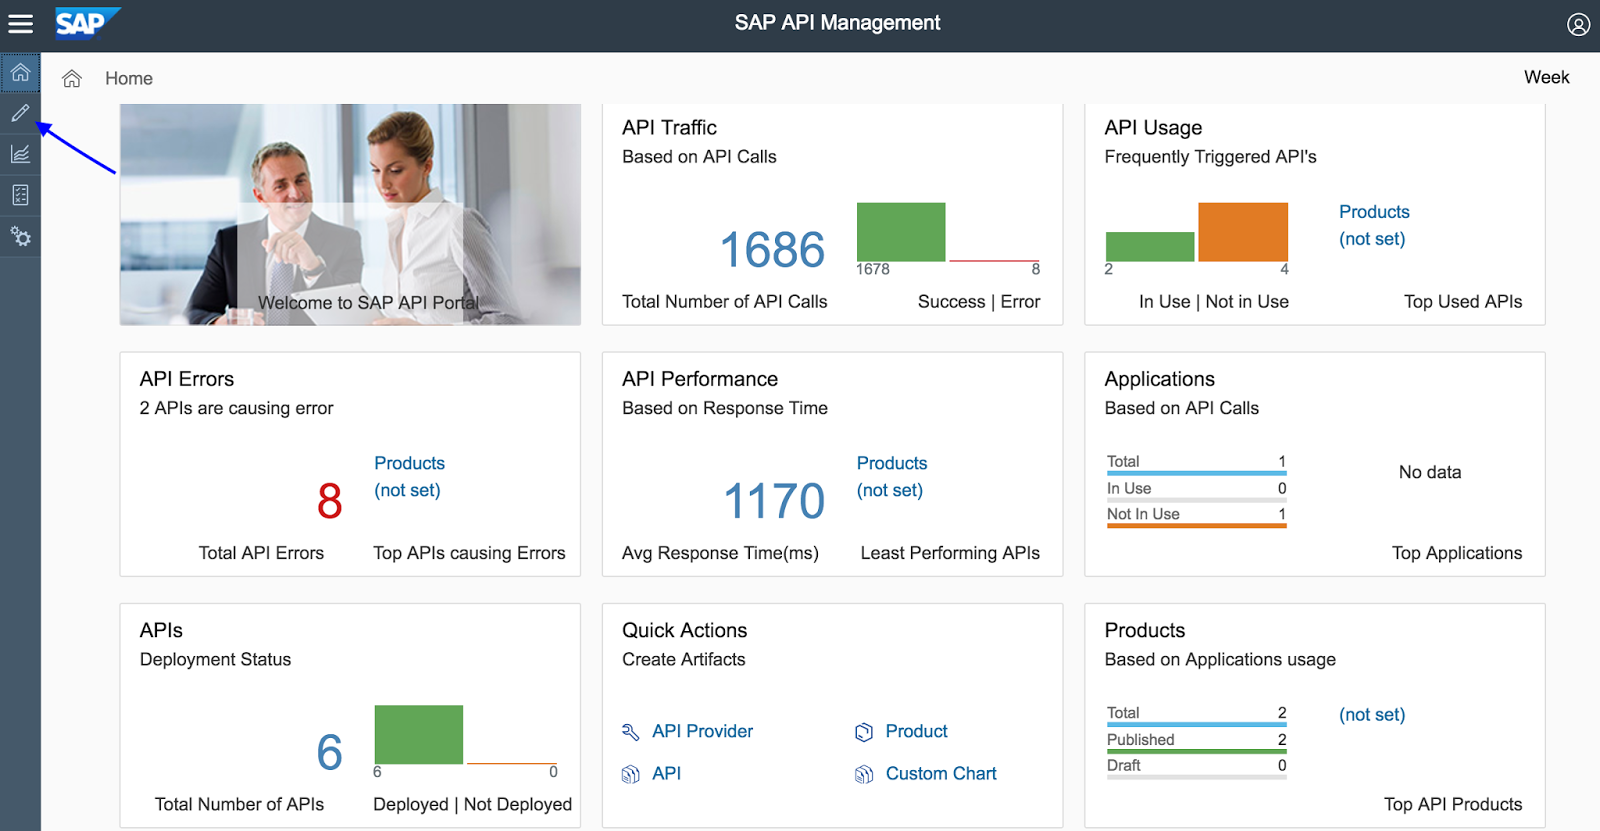 How to consume an On-Premise REST service via SAP API